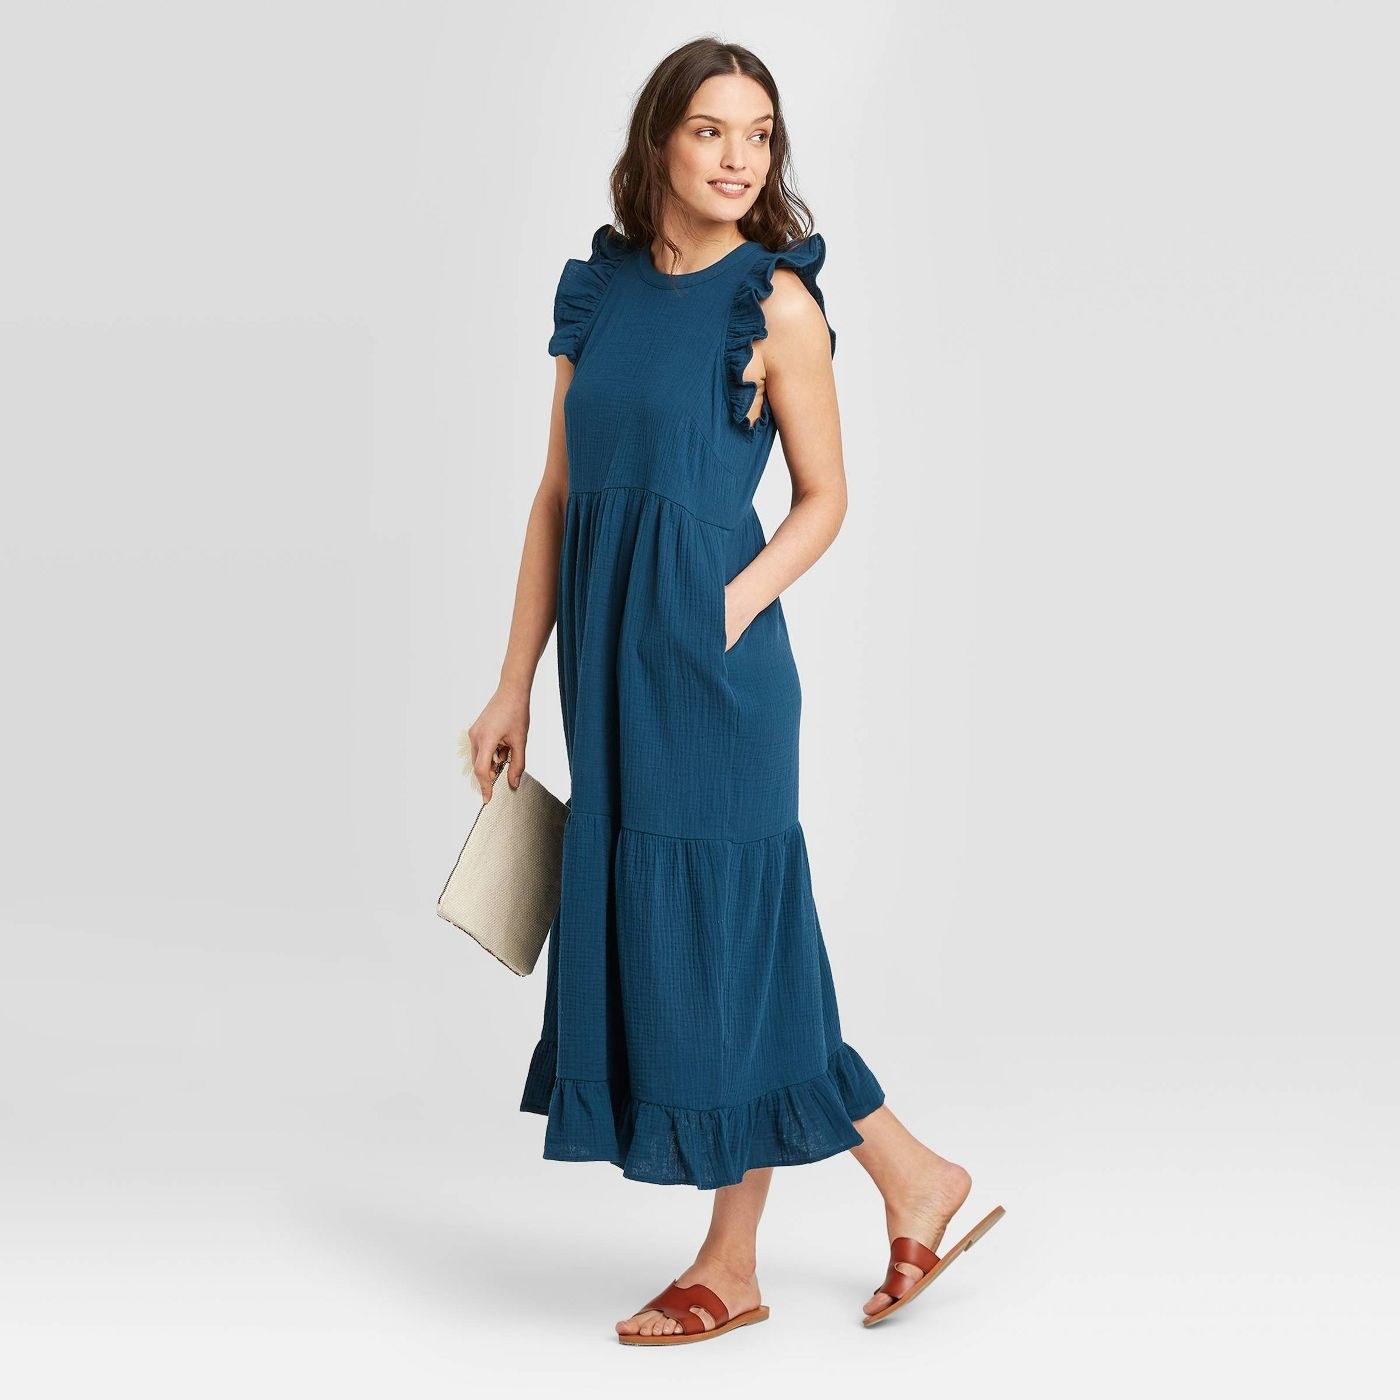 A model in the blue dress, which has pockets